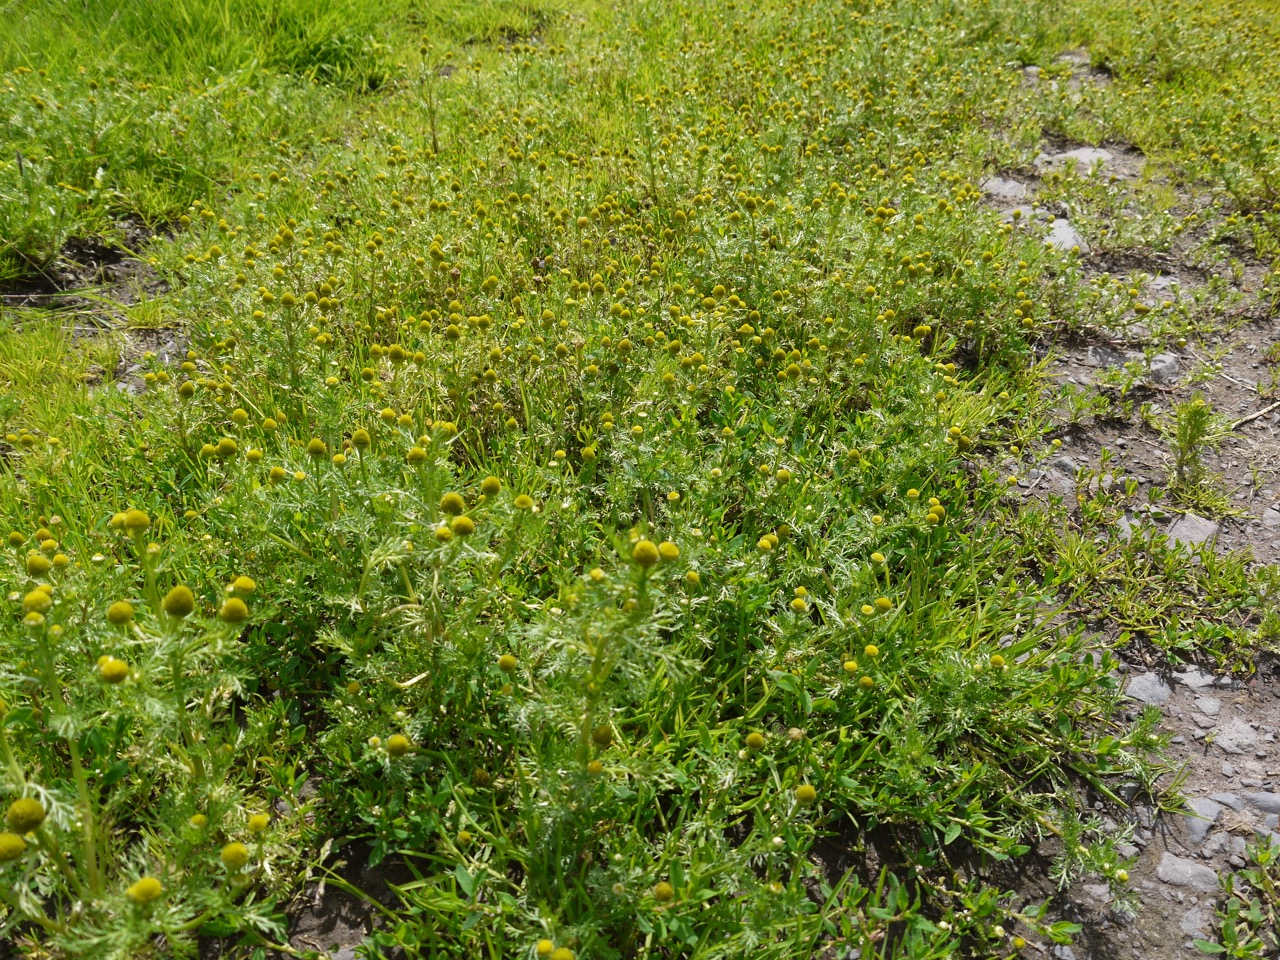 Pineapple weed covered track